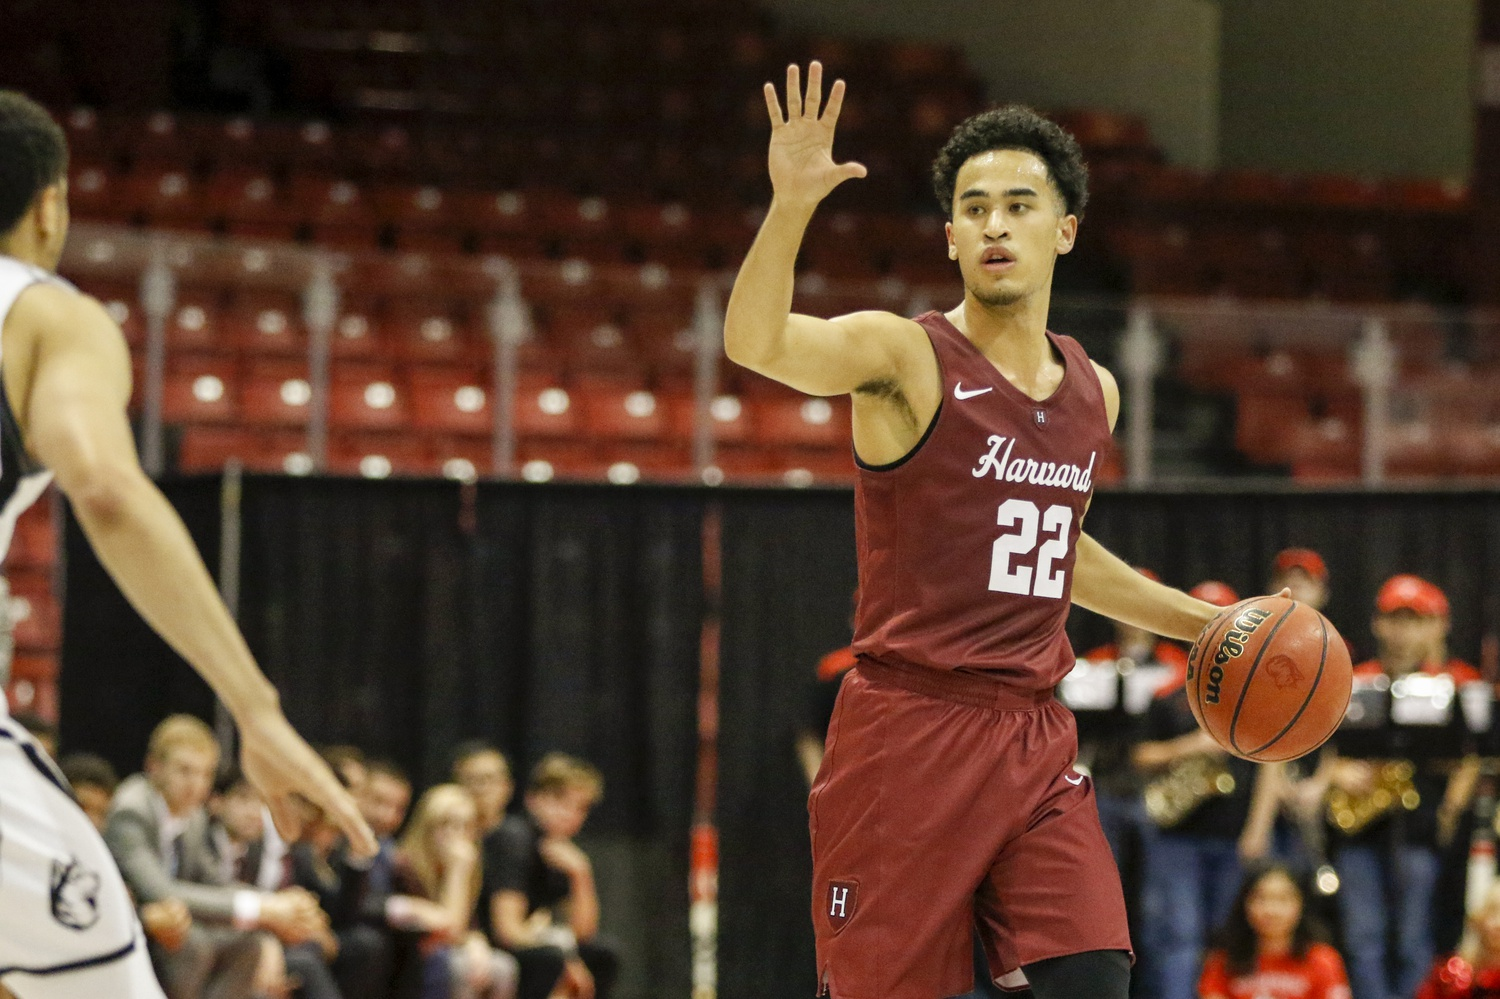 Senior guard Christian Juzang has re-assumed starting point guard duties in the absence of classmate Bryce Aiken, who suffered an ankle injury in late December.